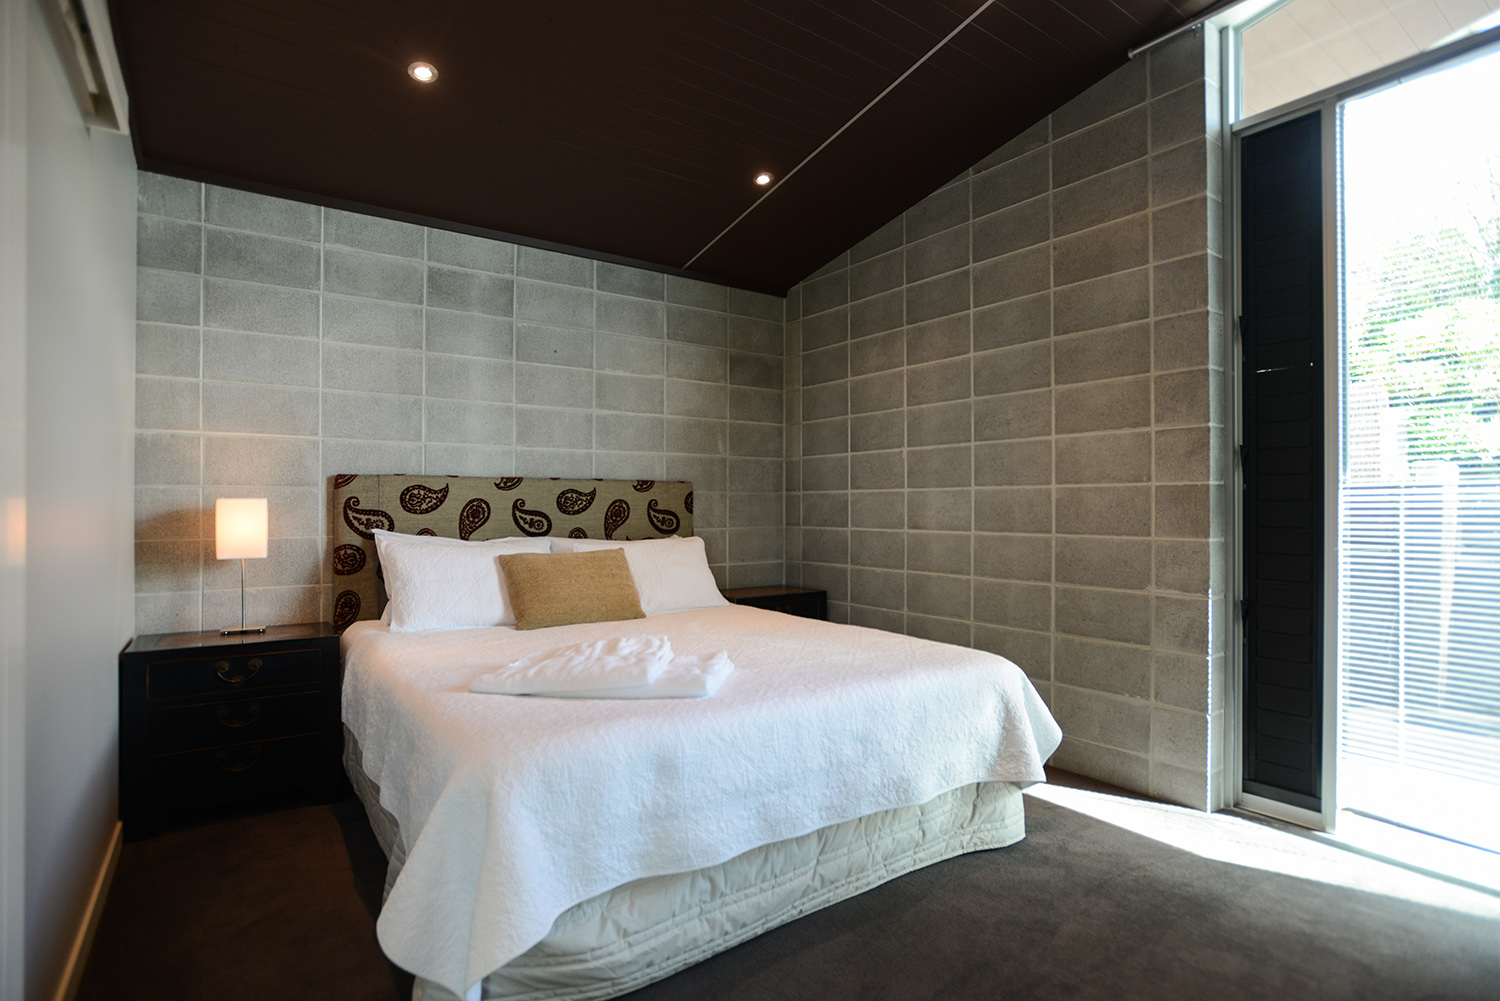 EDGECLIFF Accommodation - Bedroom 2